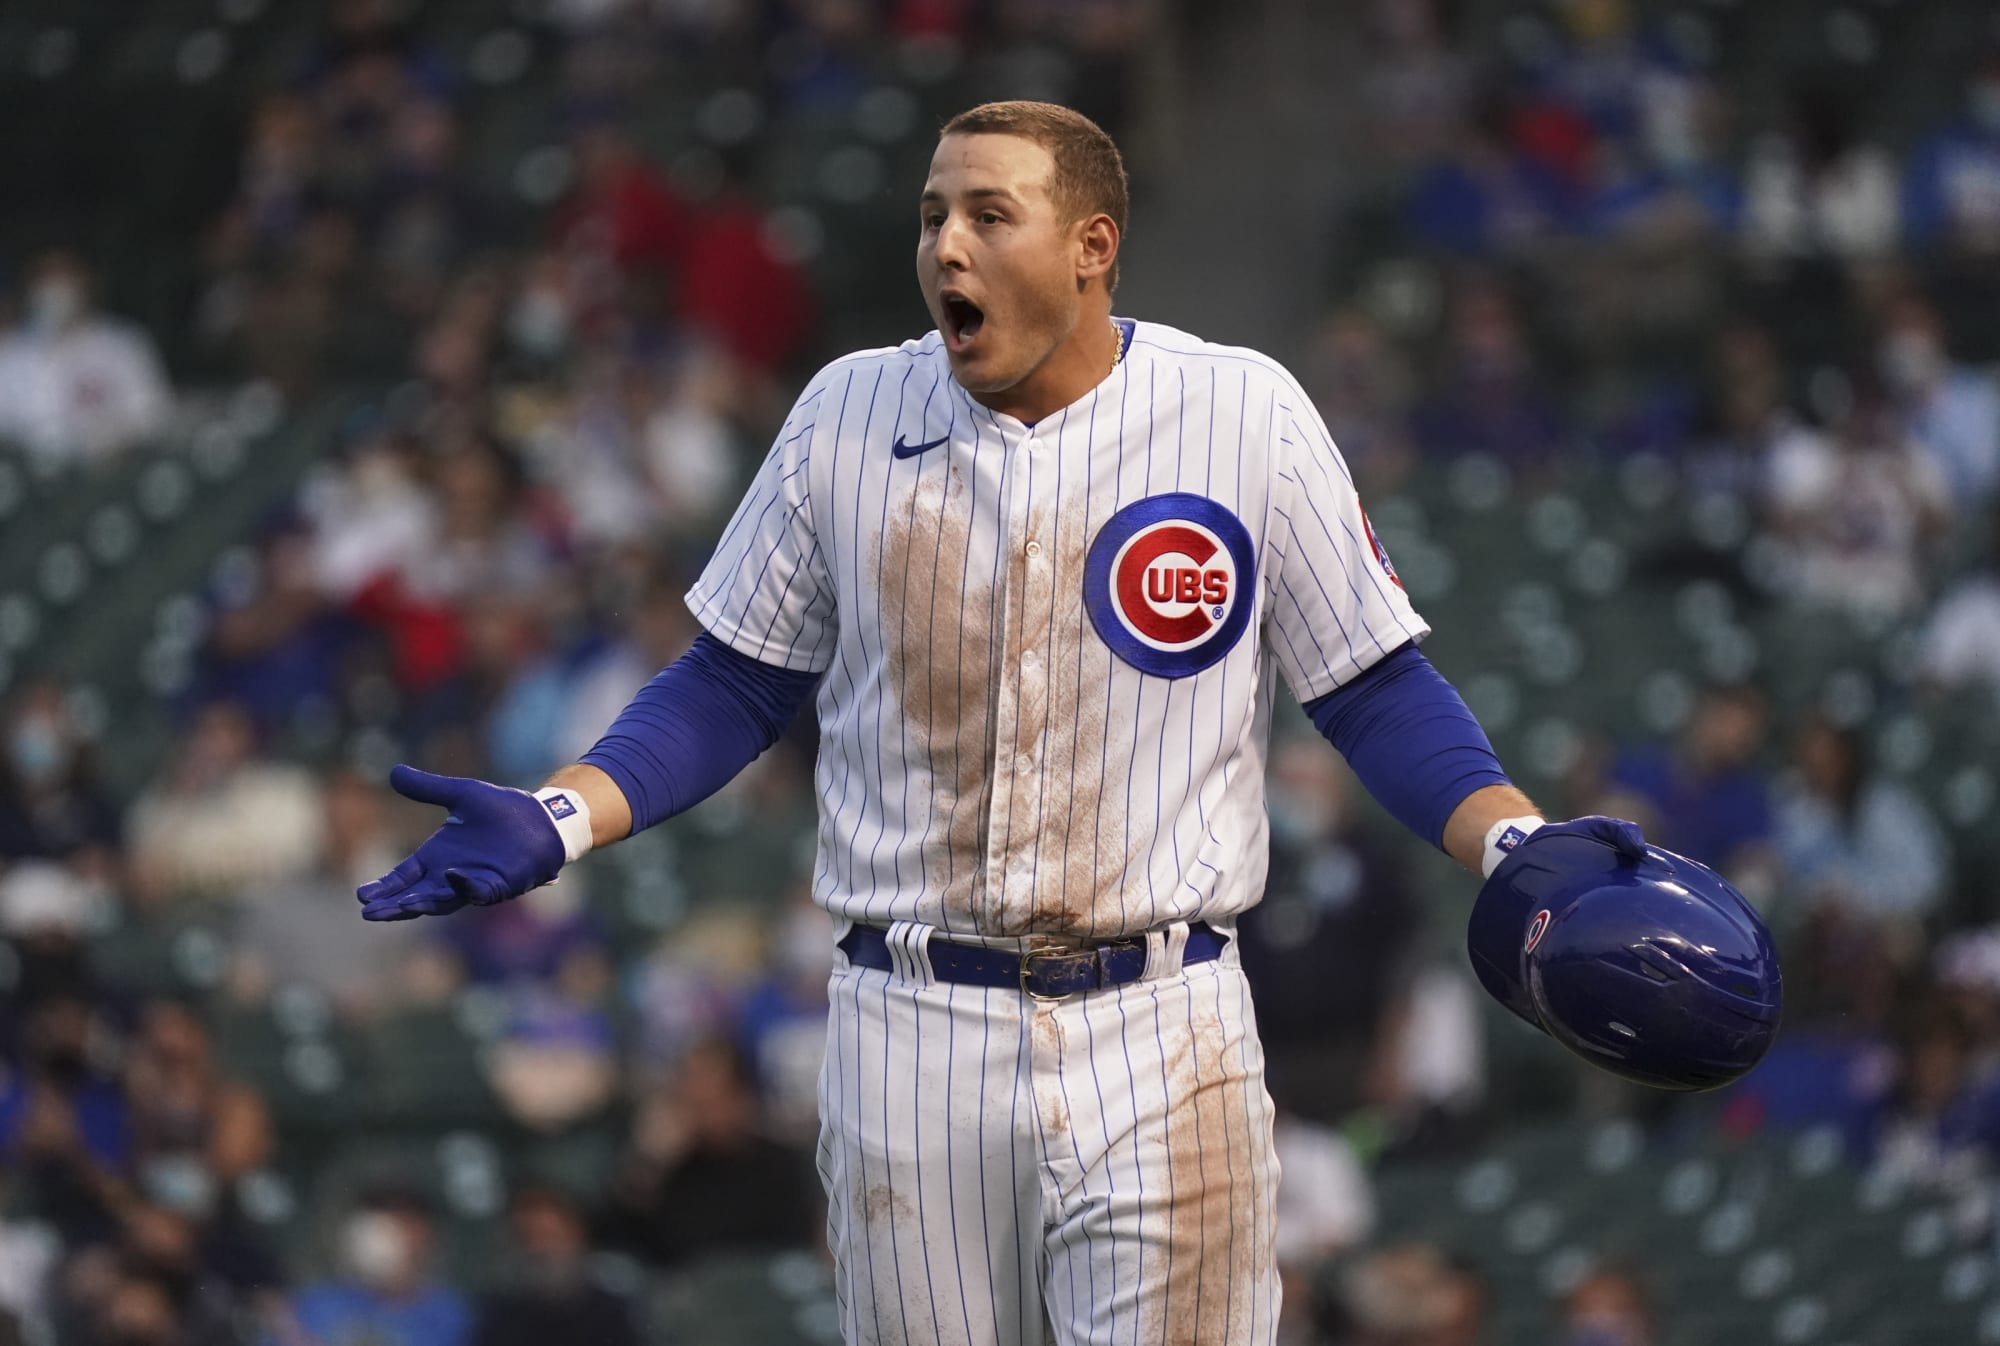 Chicago Cubs: Statcast shows Rizzo and Happ are due